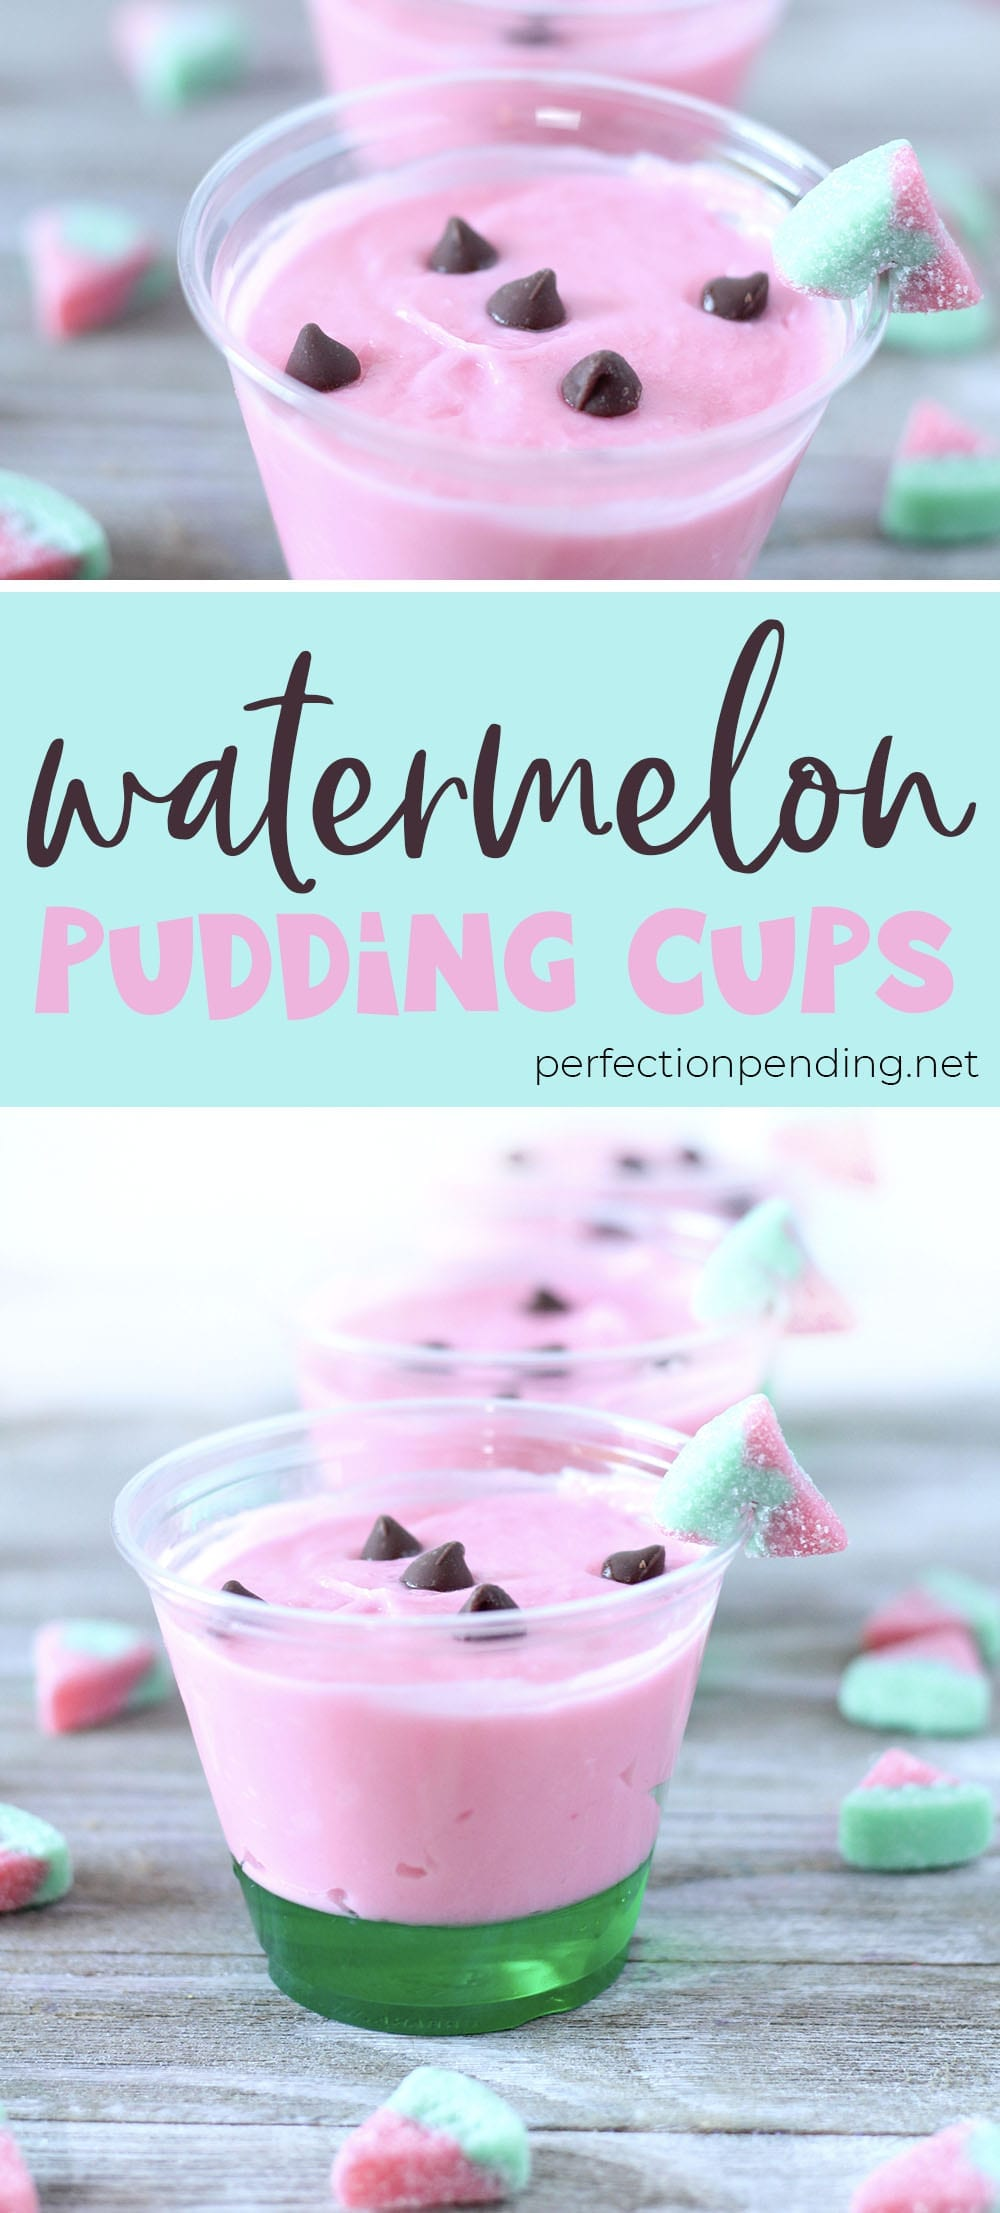 These watermelon pudding cups are the PERFECT summer treat just as the summer is coming to an end. They're sweet, fun, and so yummy! The kids will love them and so will the whole family. #watermeloncups #watermelon #summerdessert #cutesummertreat #summerideas #summertime